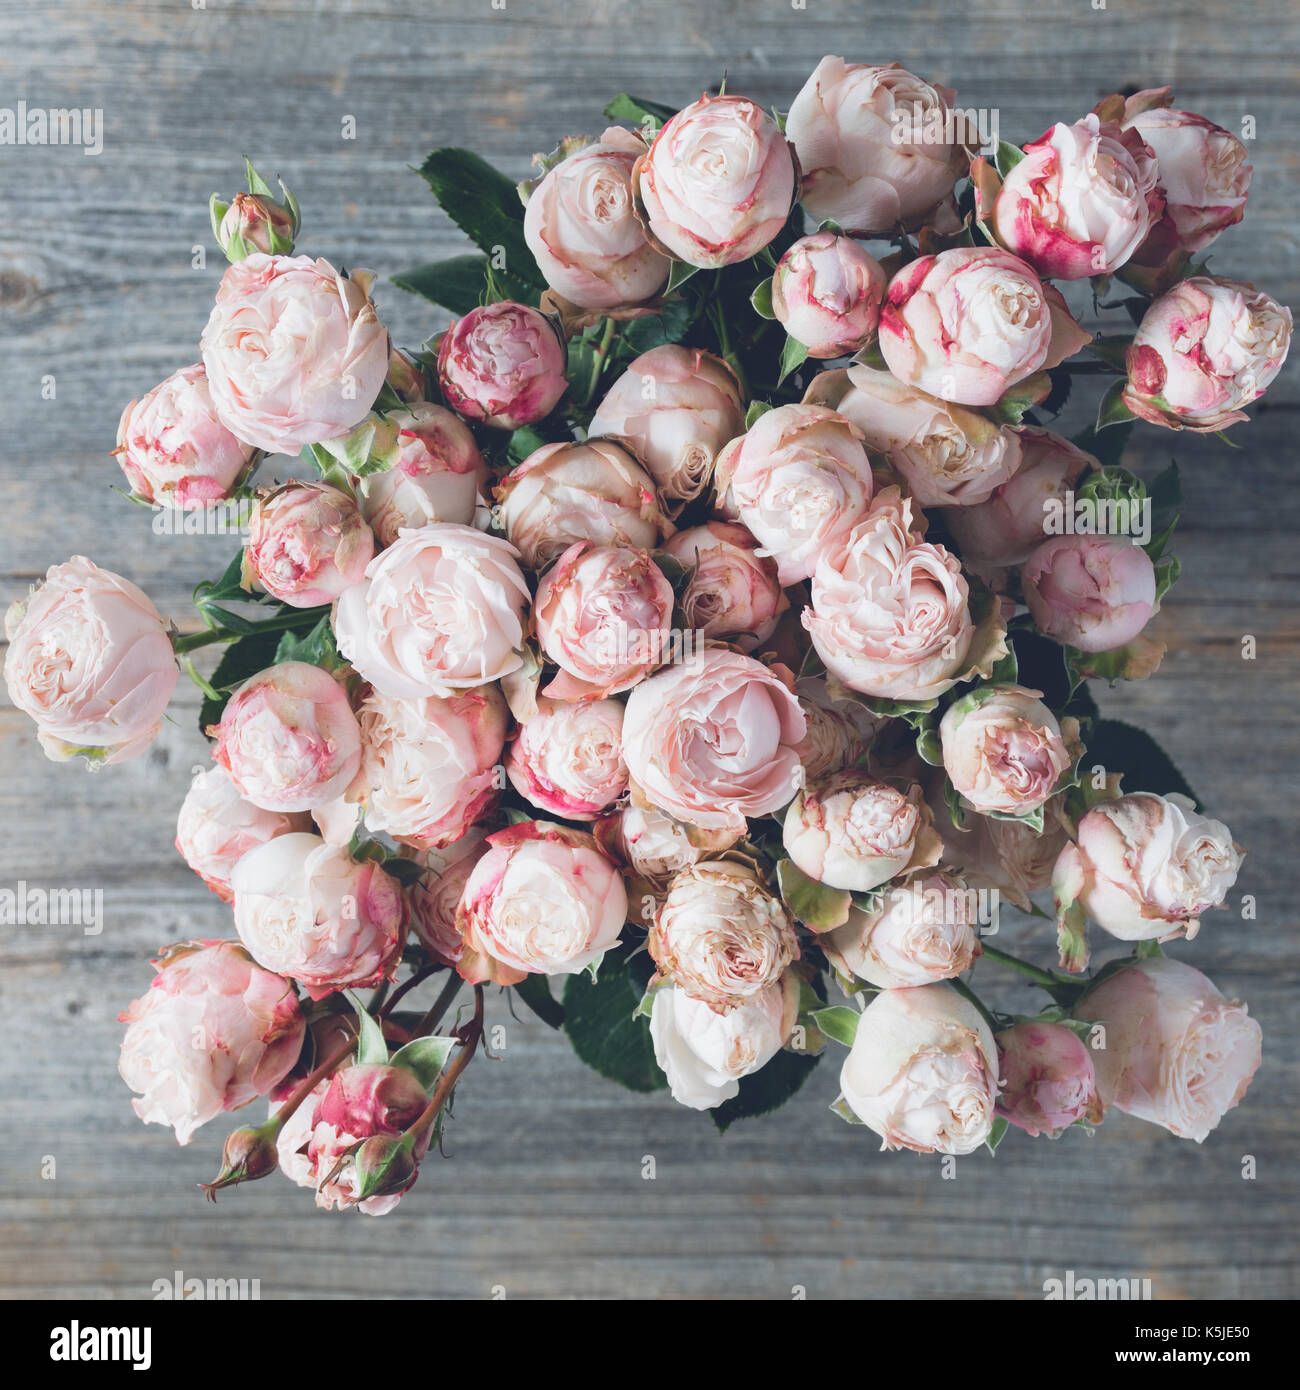 pink shrub roses bouquet of wedding flowers on wooden background stock photo royalty free image. Black Bedroom Furniture Sets. Home Design Ideas